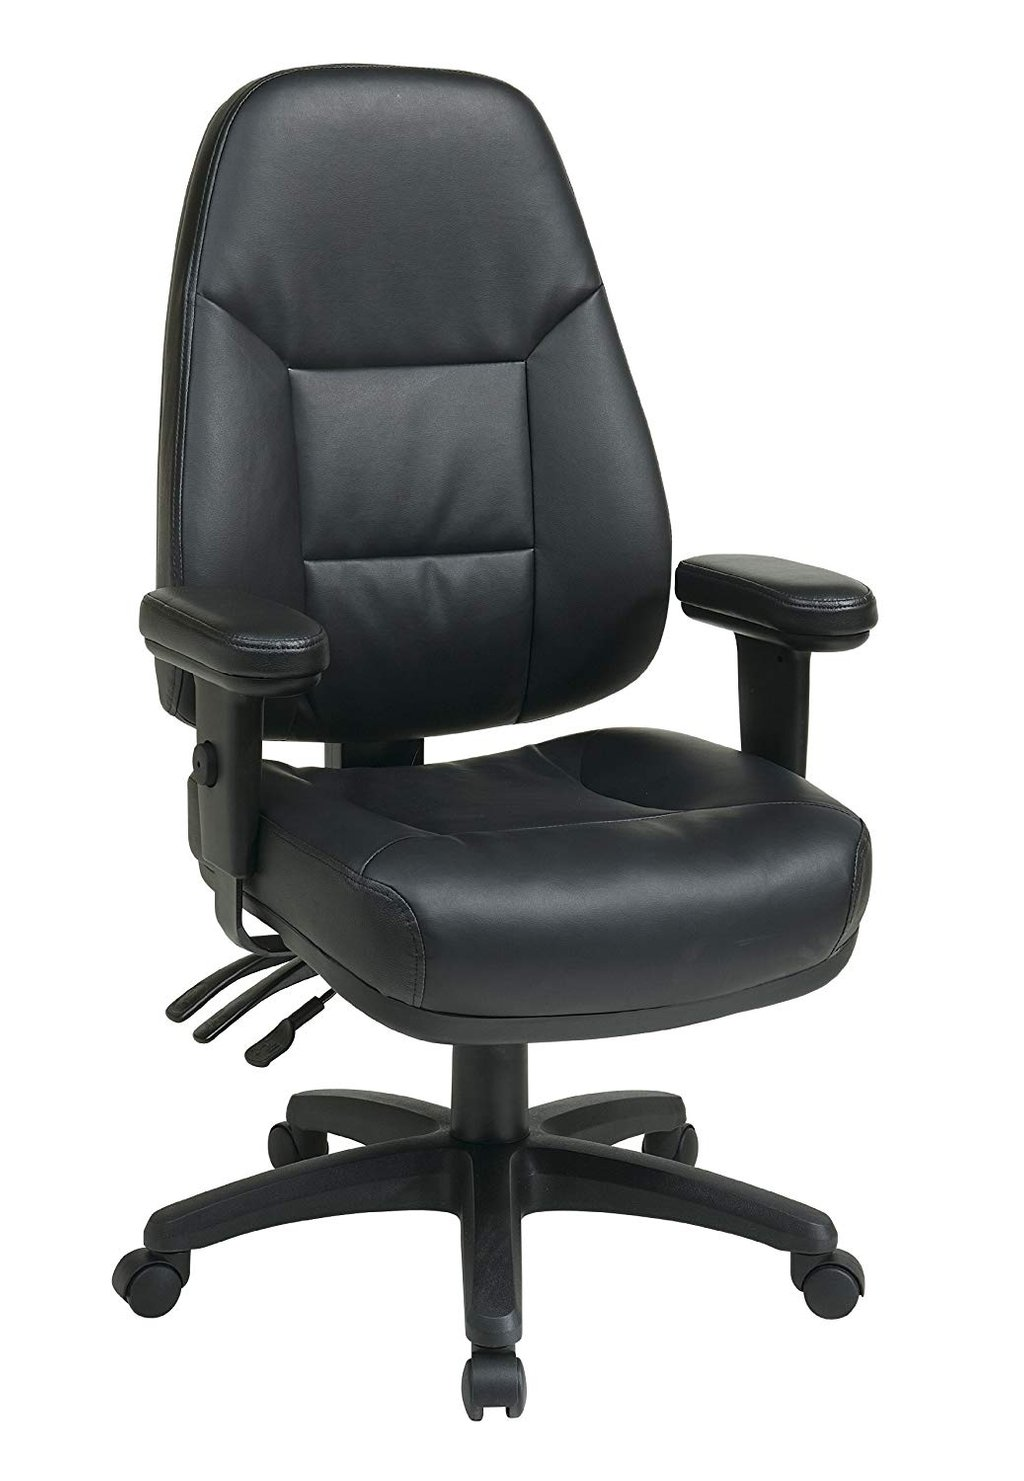 Orthopedic Office Chair Oprthopedic Office Chair Armless Office Chairs: Don't Miss It